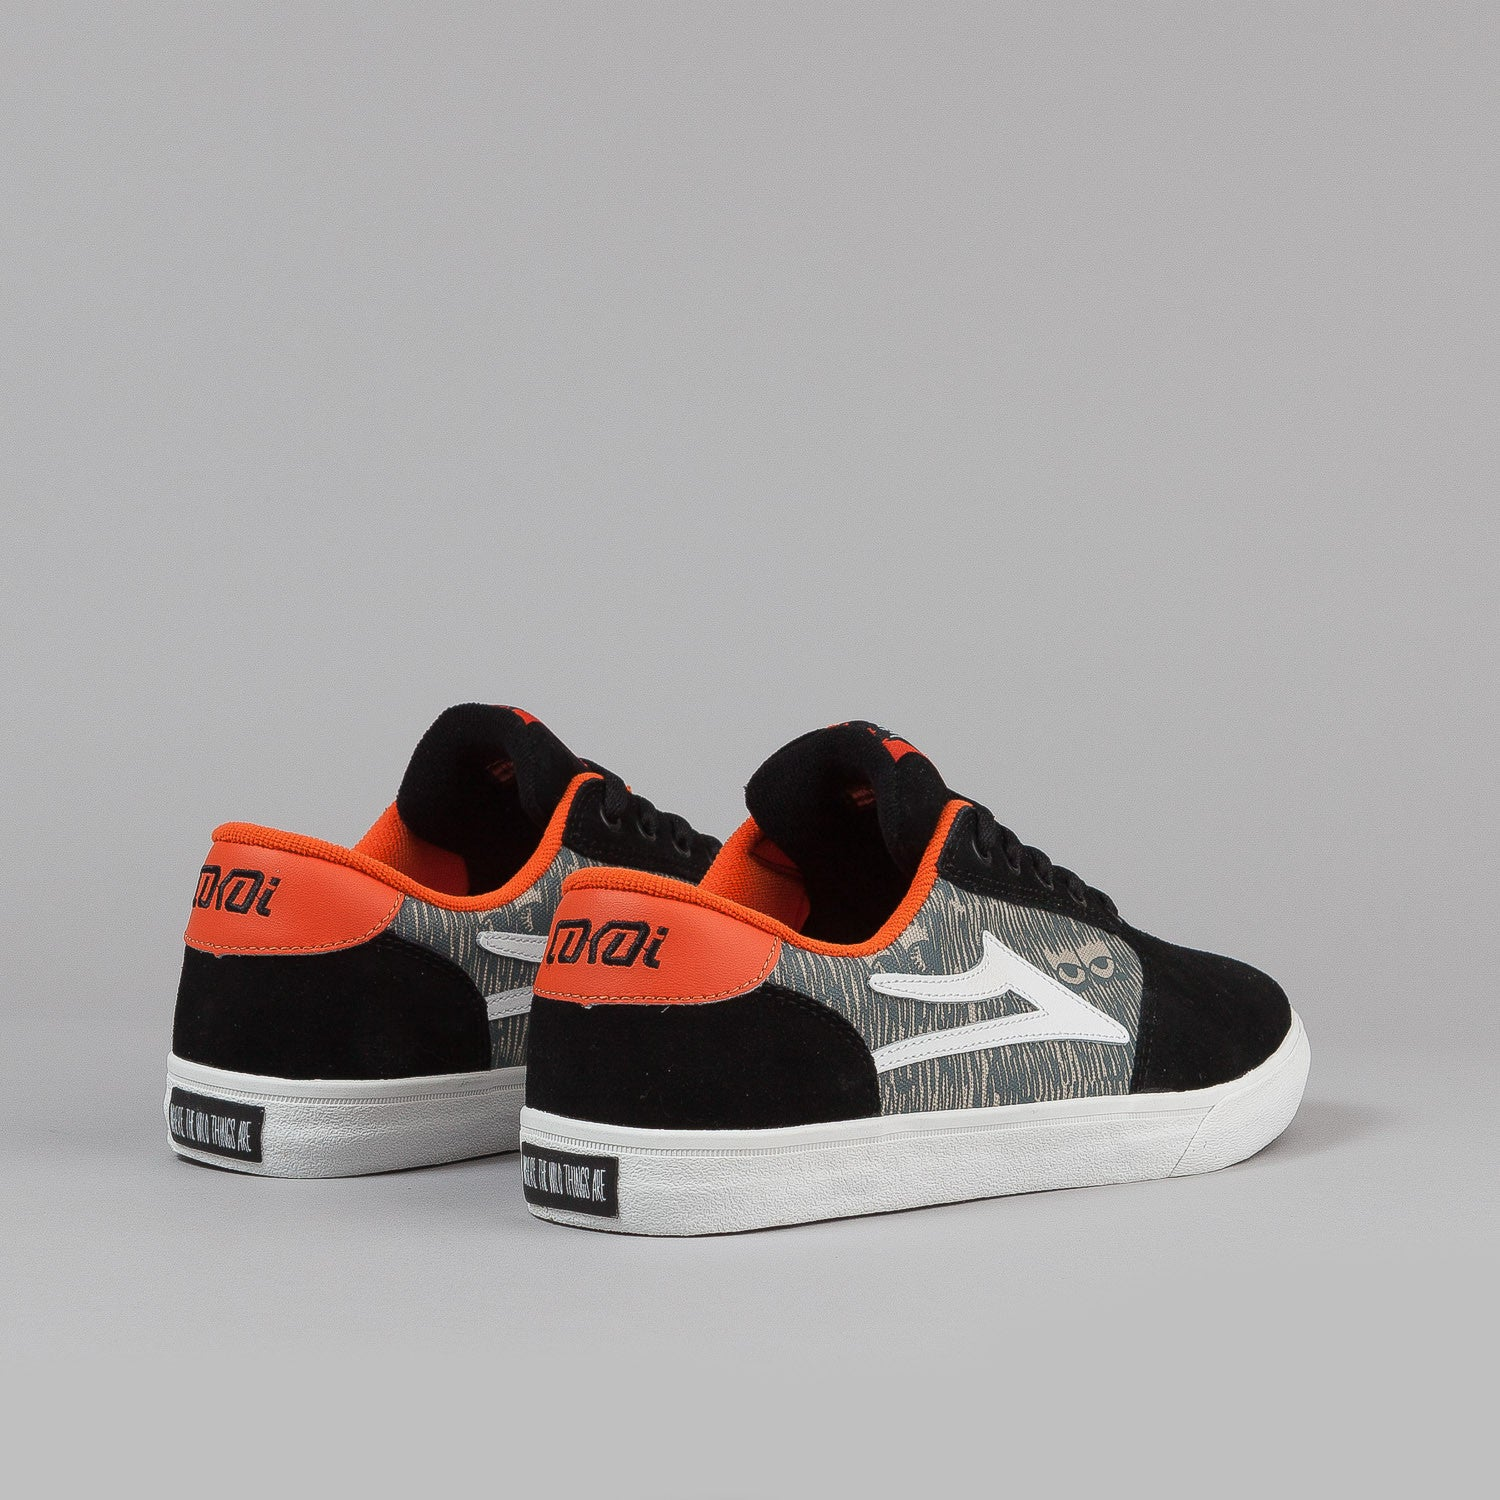 Lakai Pico WT Shoes - 'Wild Things' Black / Grey